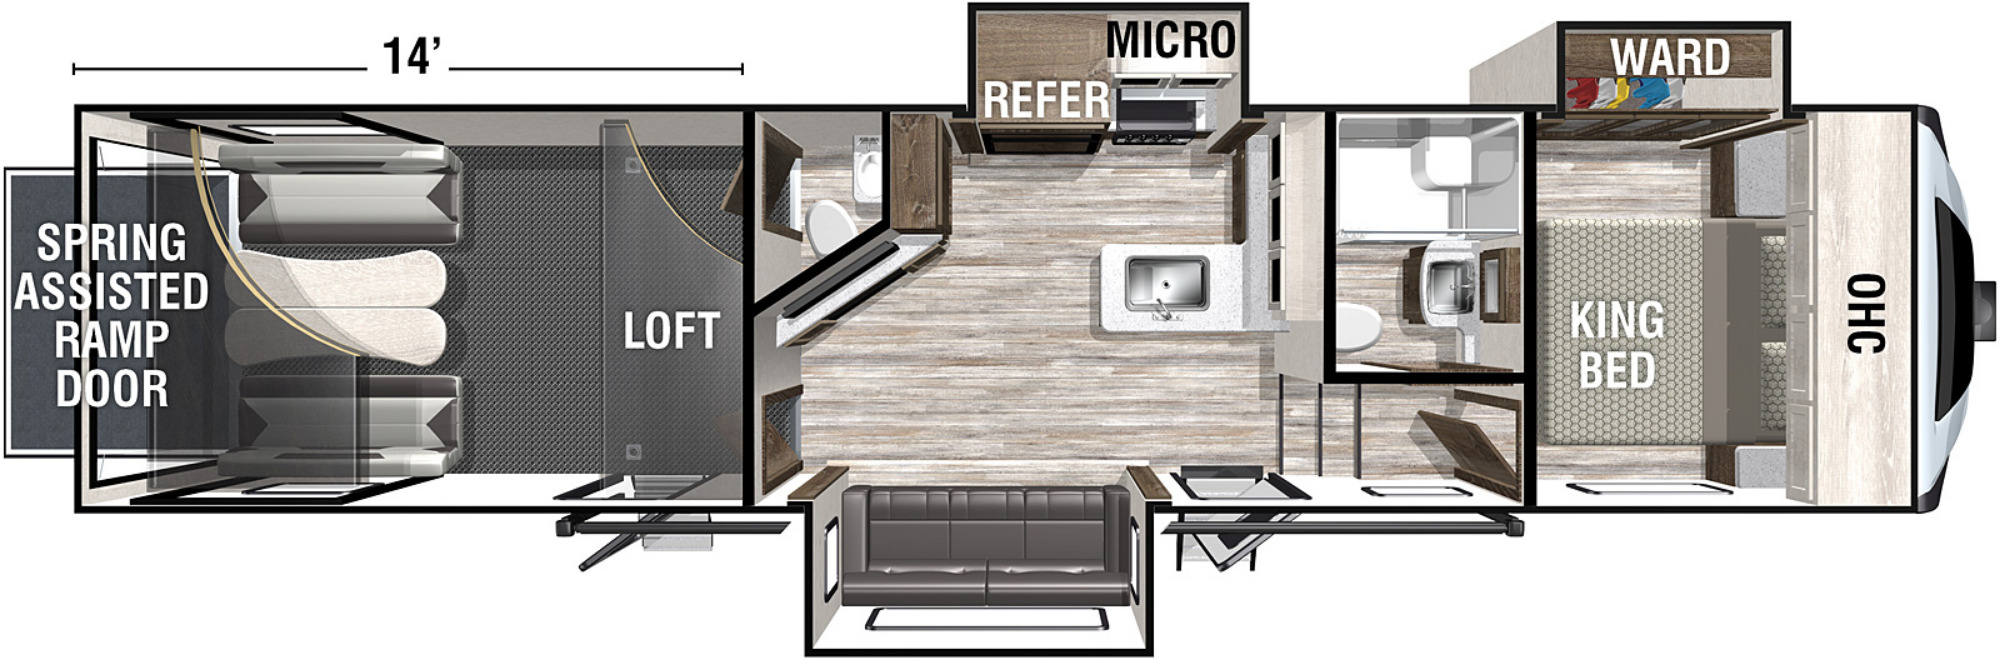 View Floor Plan for 2021 FOREST RIVER XLR NITRO 351